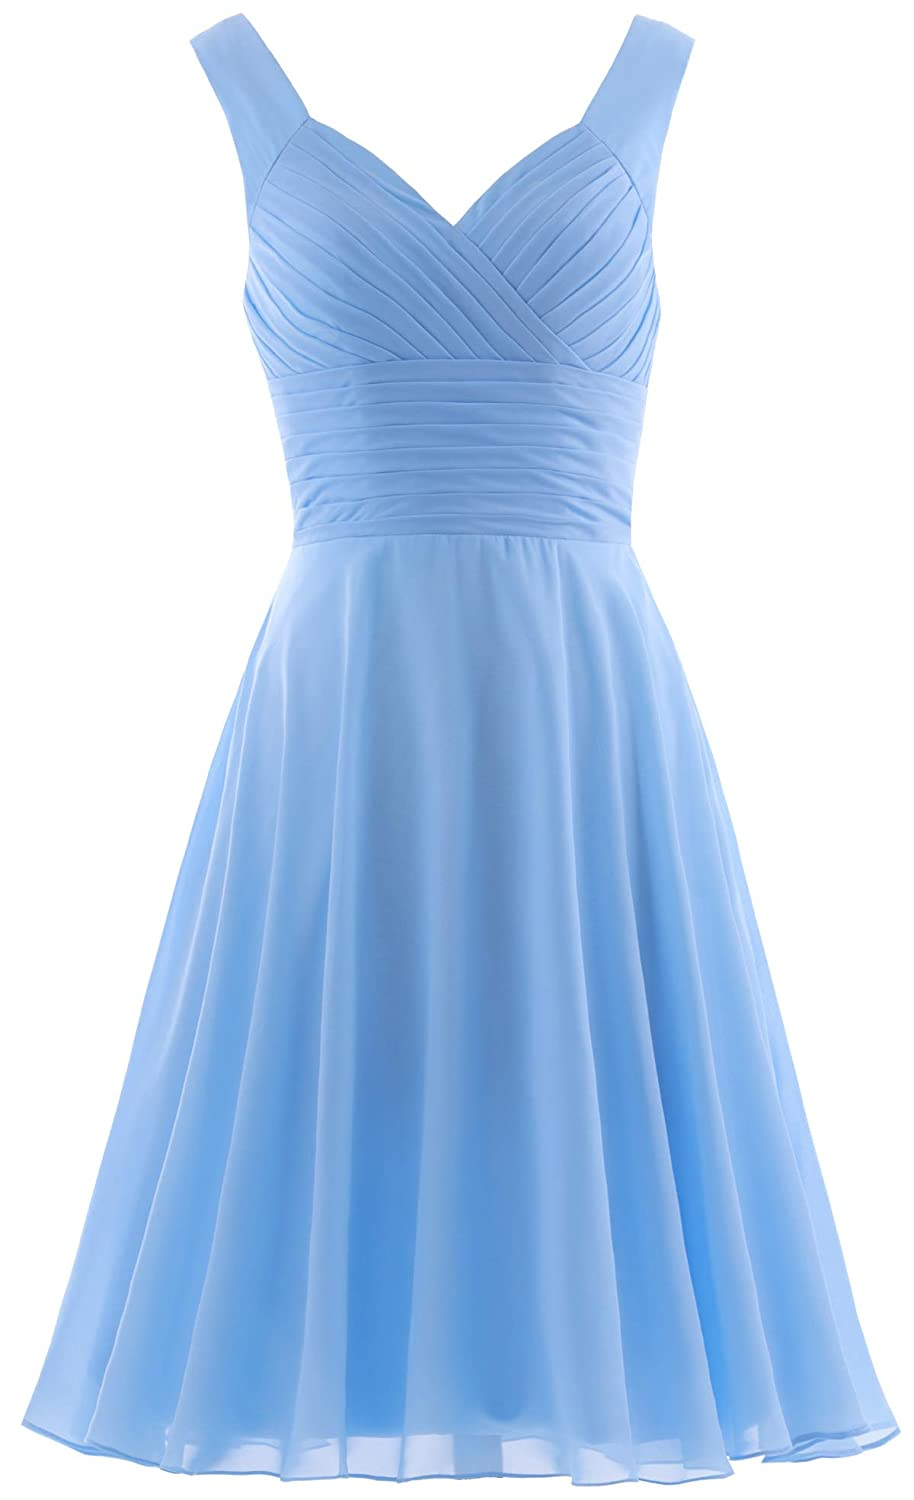 7862772f81e ANTS Women s Pleated Sweetheart Bridesmaid Dresses A Line Cocktail Gown at  Amazon Women s Clothing store